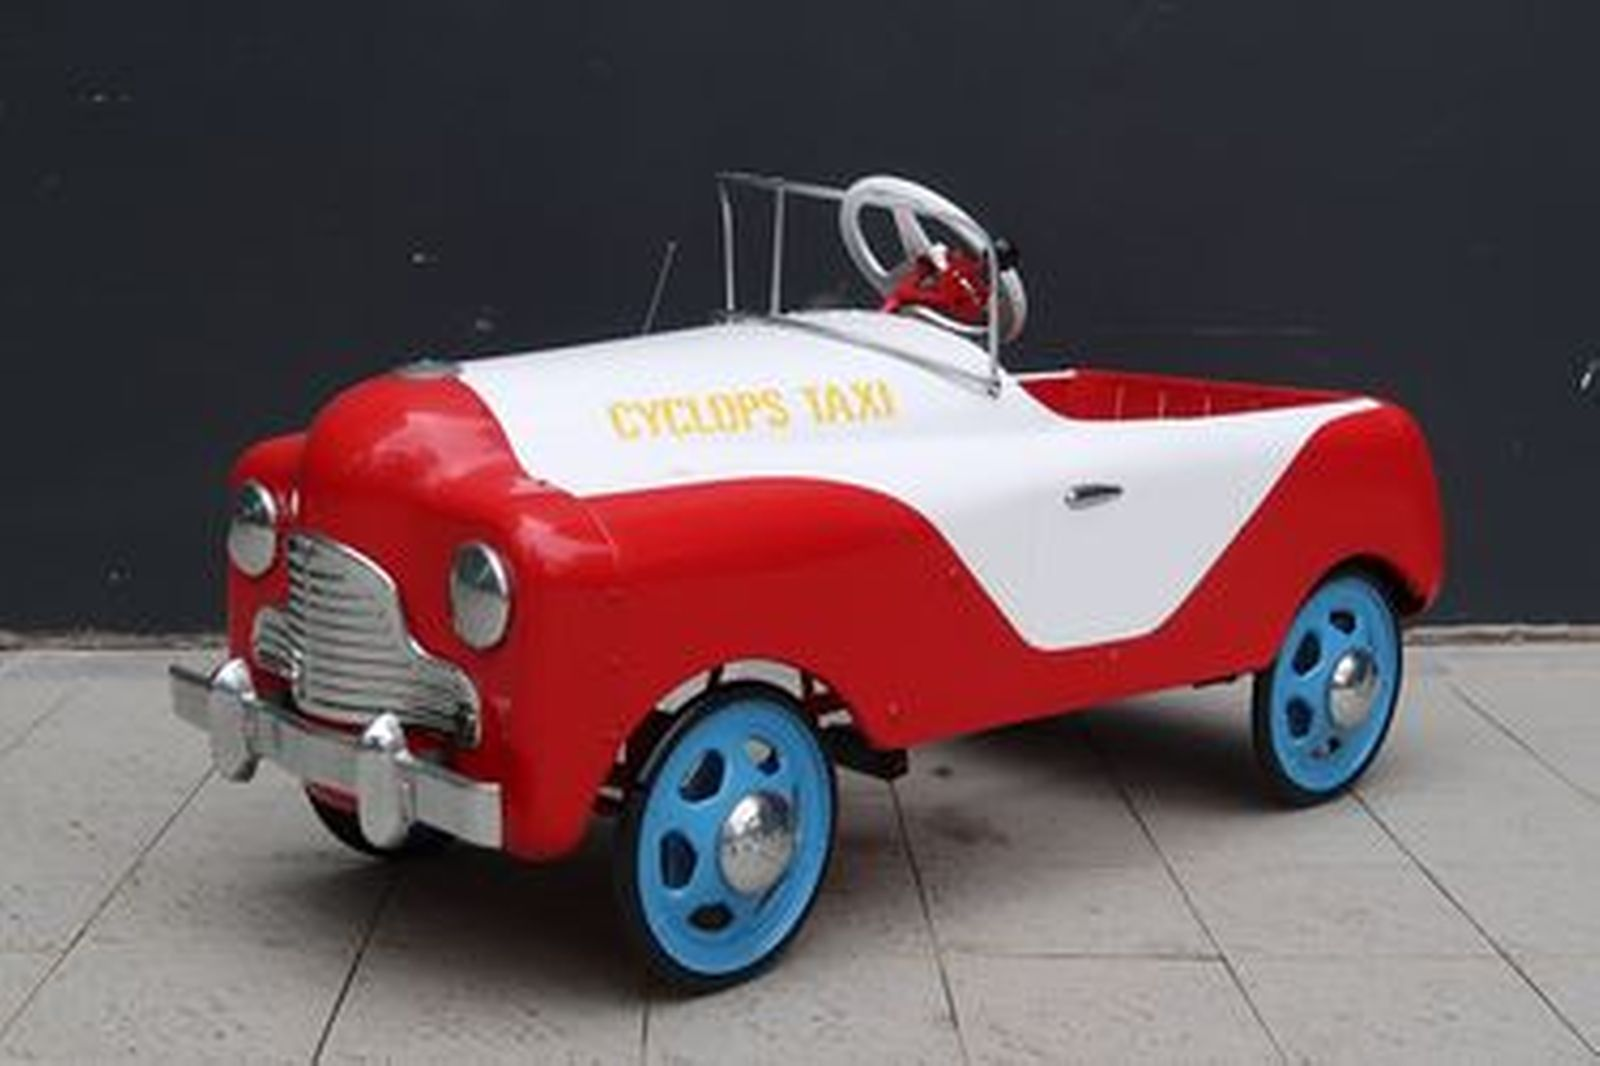 Pedal Car - c1950 Cyclops Taxi Car